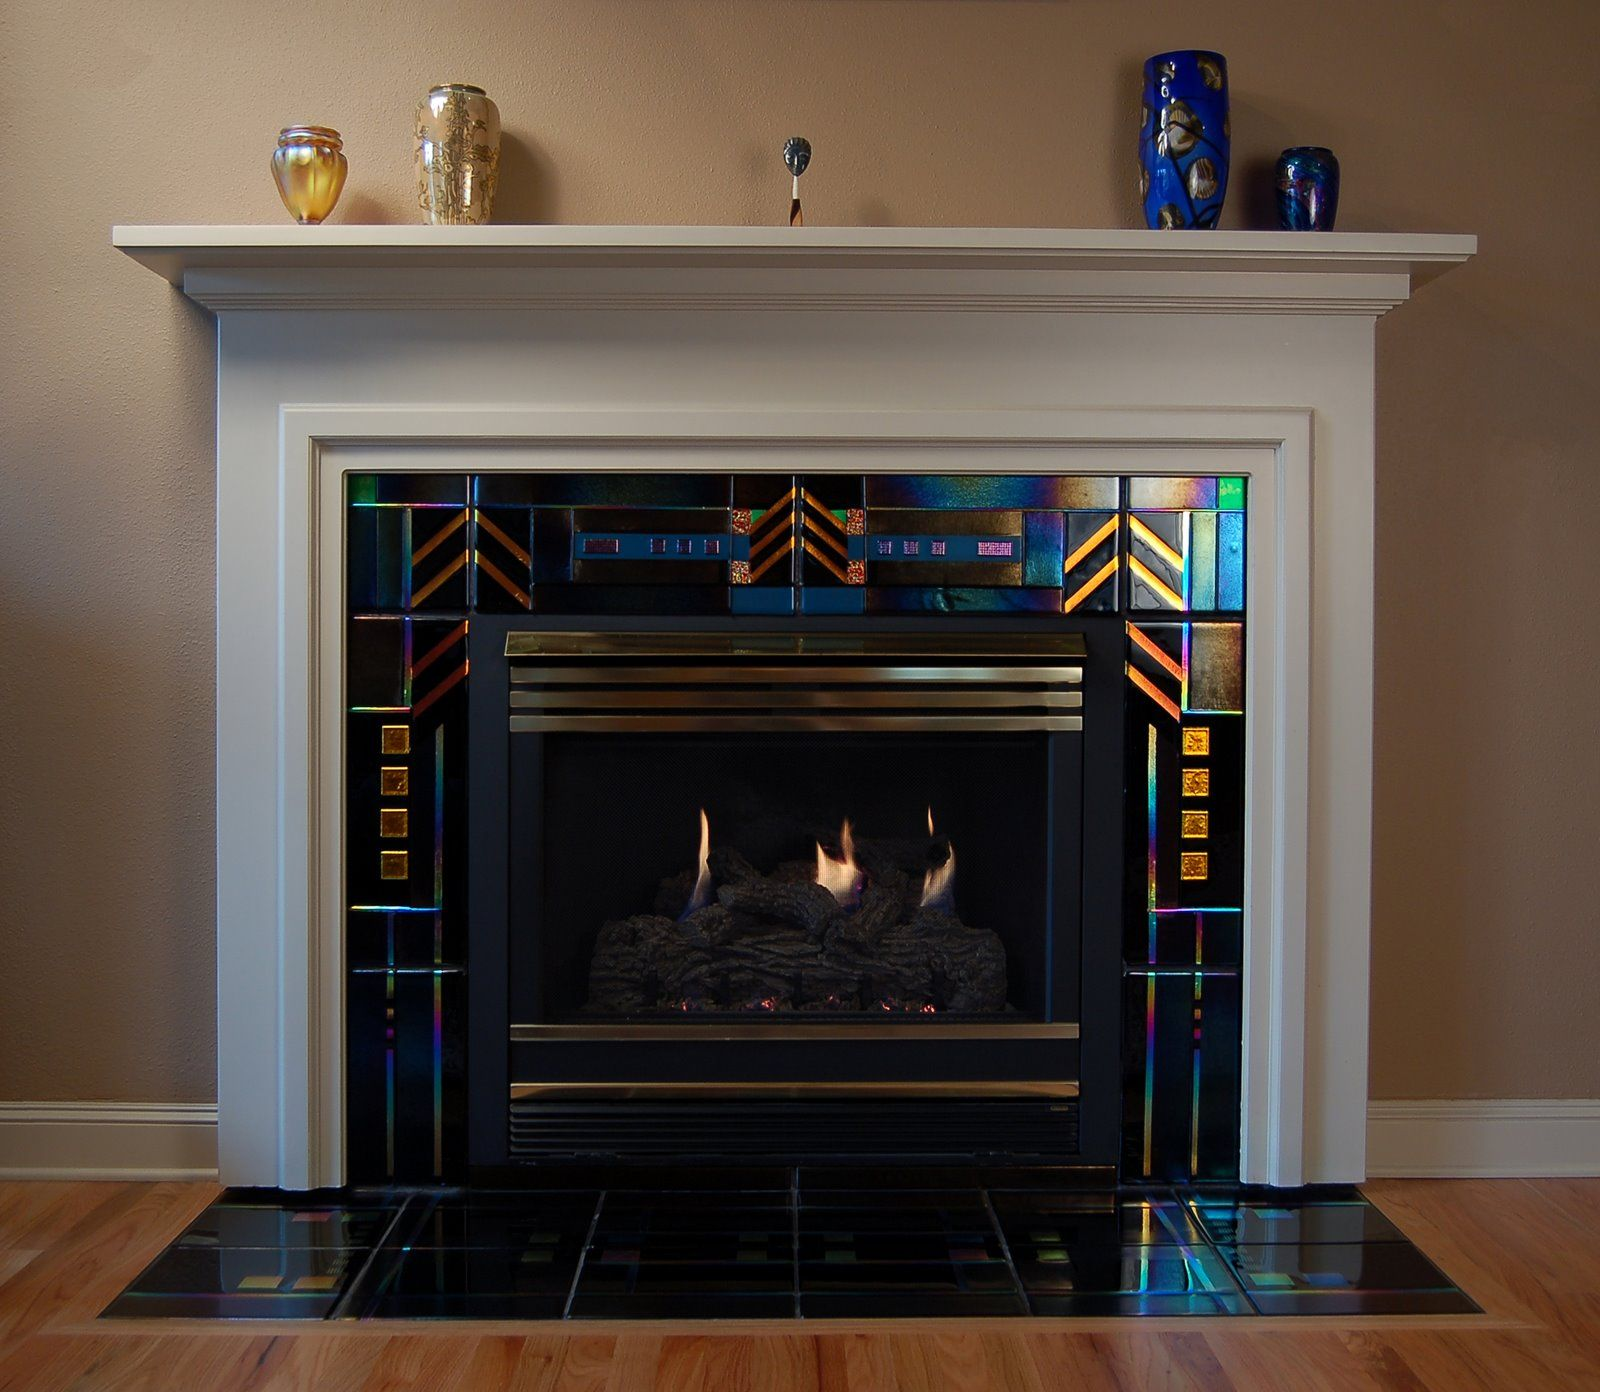 Brick Fireplace Ideas Orange Red Black Gray And White Brick Fireplace With Tan Beige Walls Des Fireplace Tile White Brick Fireplace Fireplace Mantel Designs